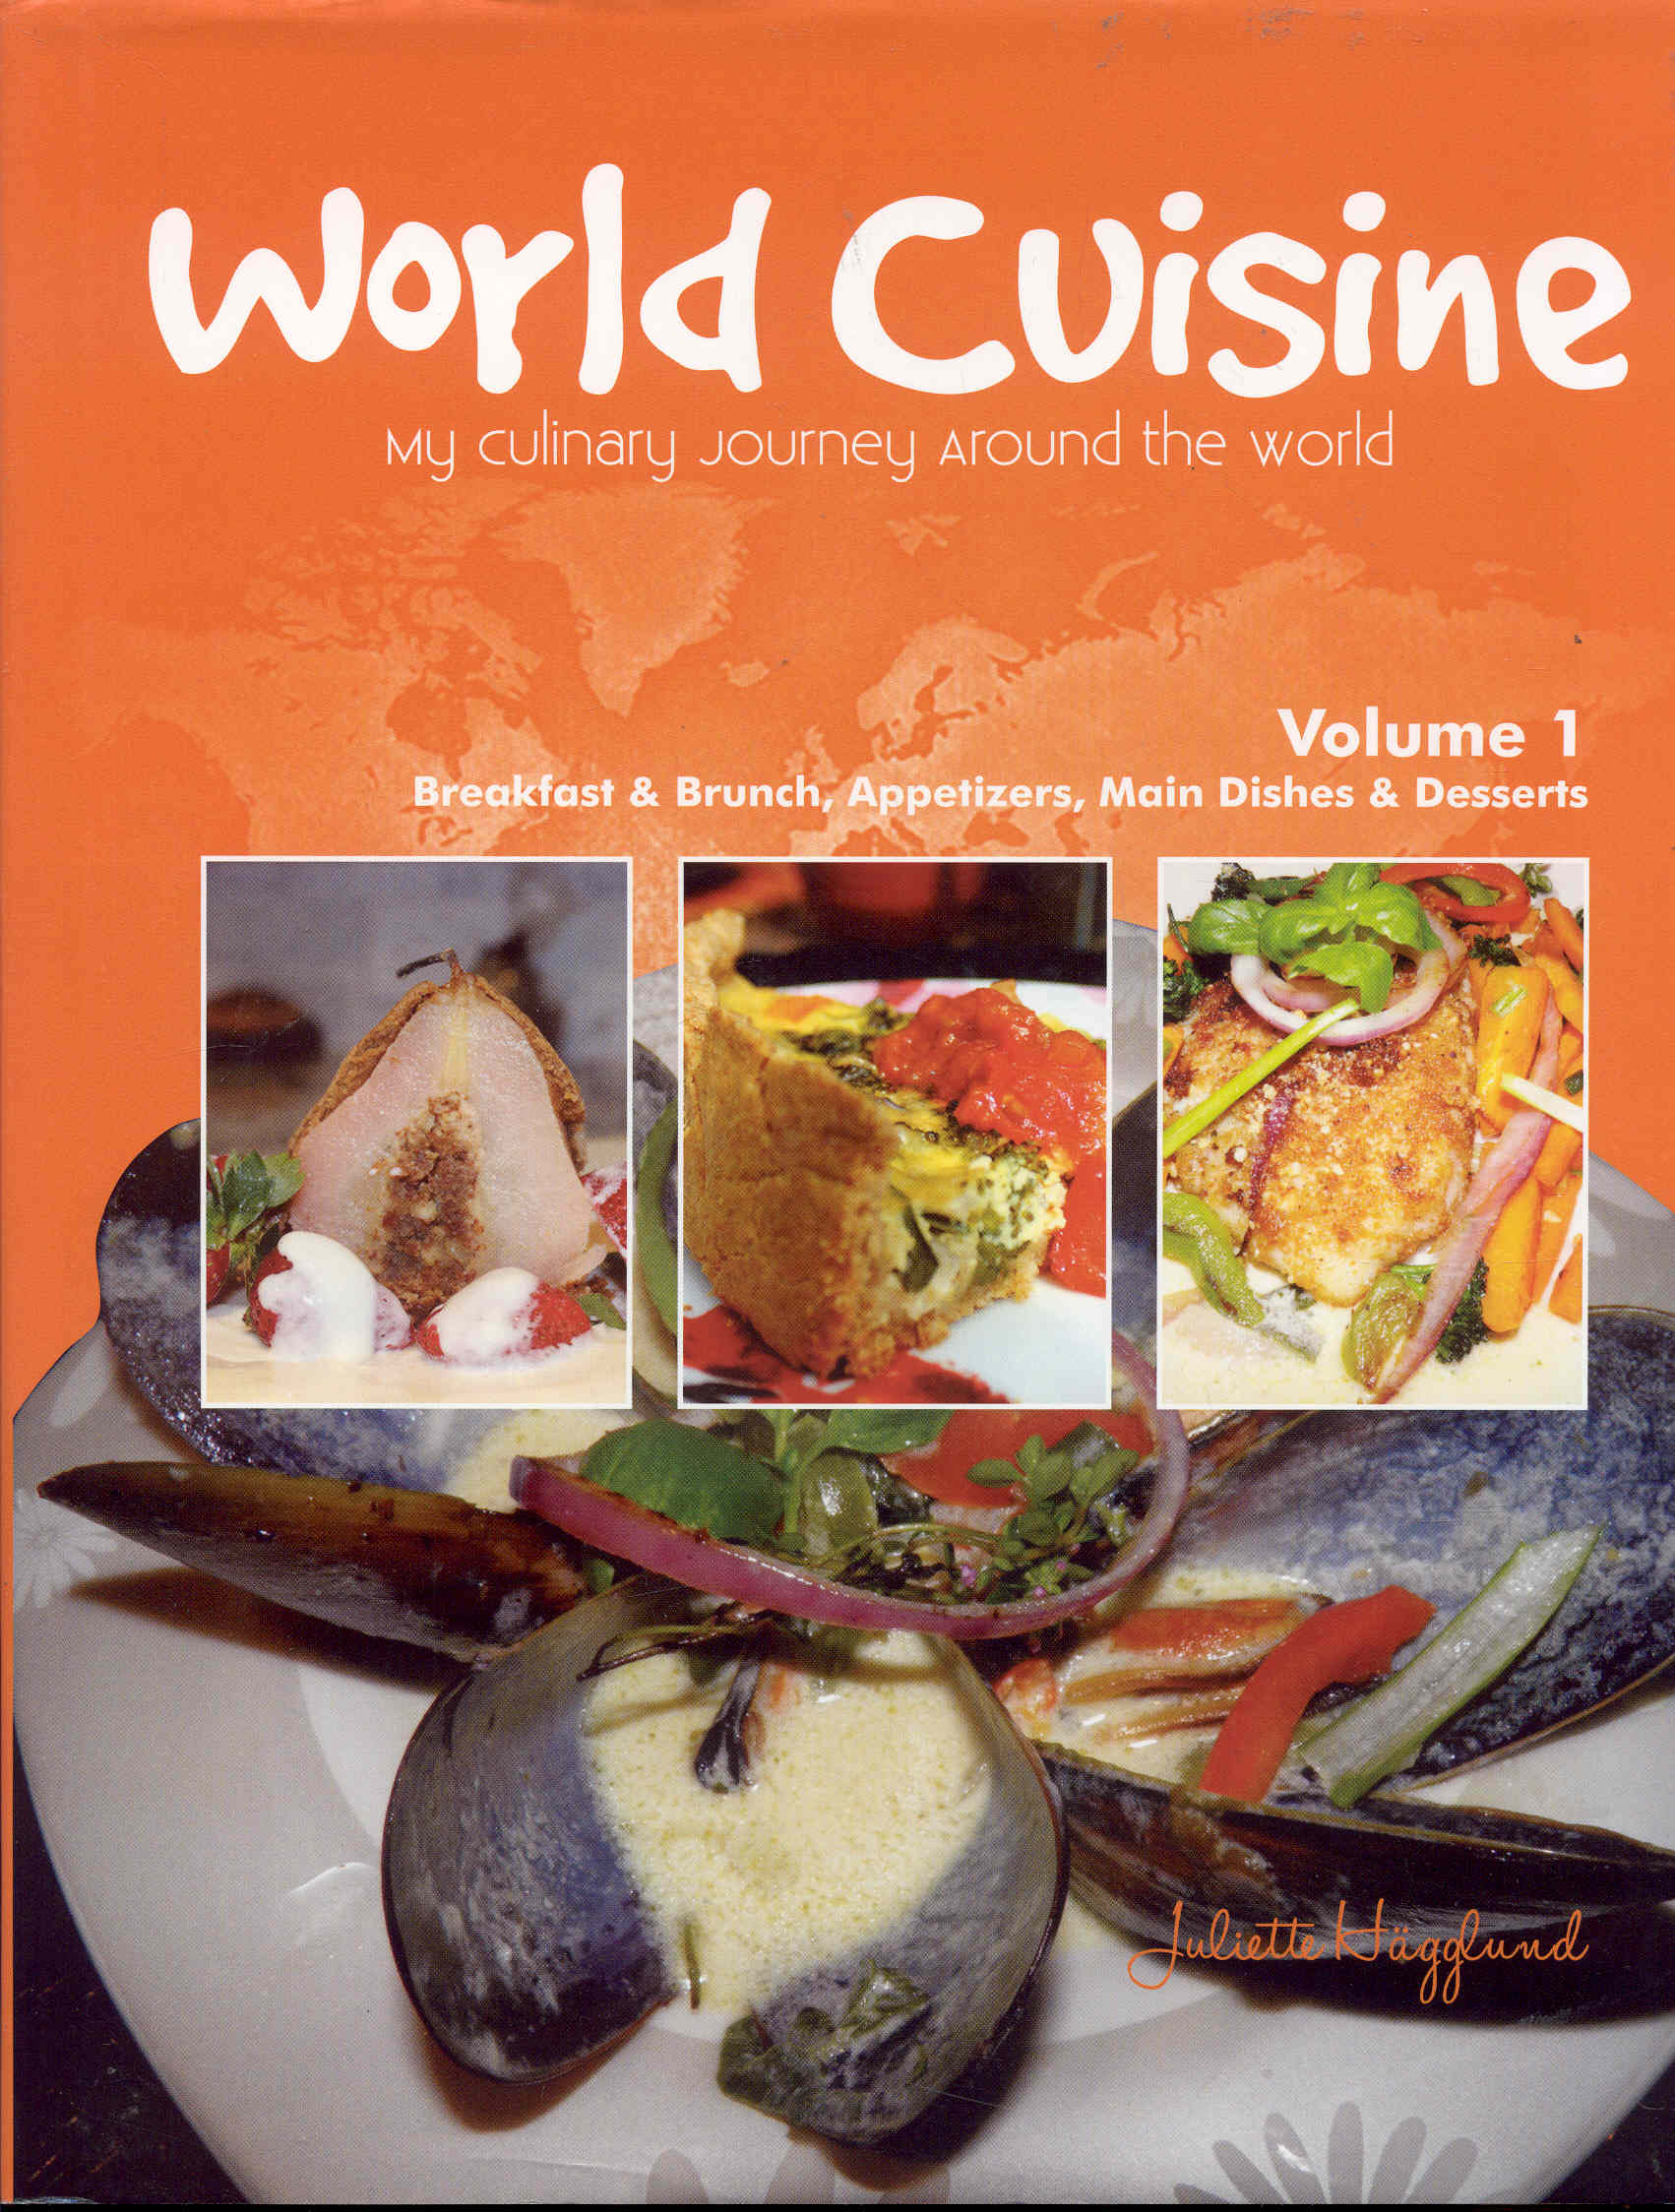 Image for World Cuisine: My Culinary Journey Around the World (Volume 1 - Breakfast & Brunch, Appetizers, Main Dishes & Desserts)